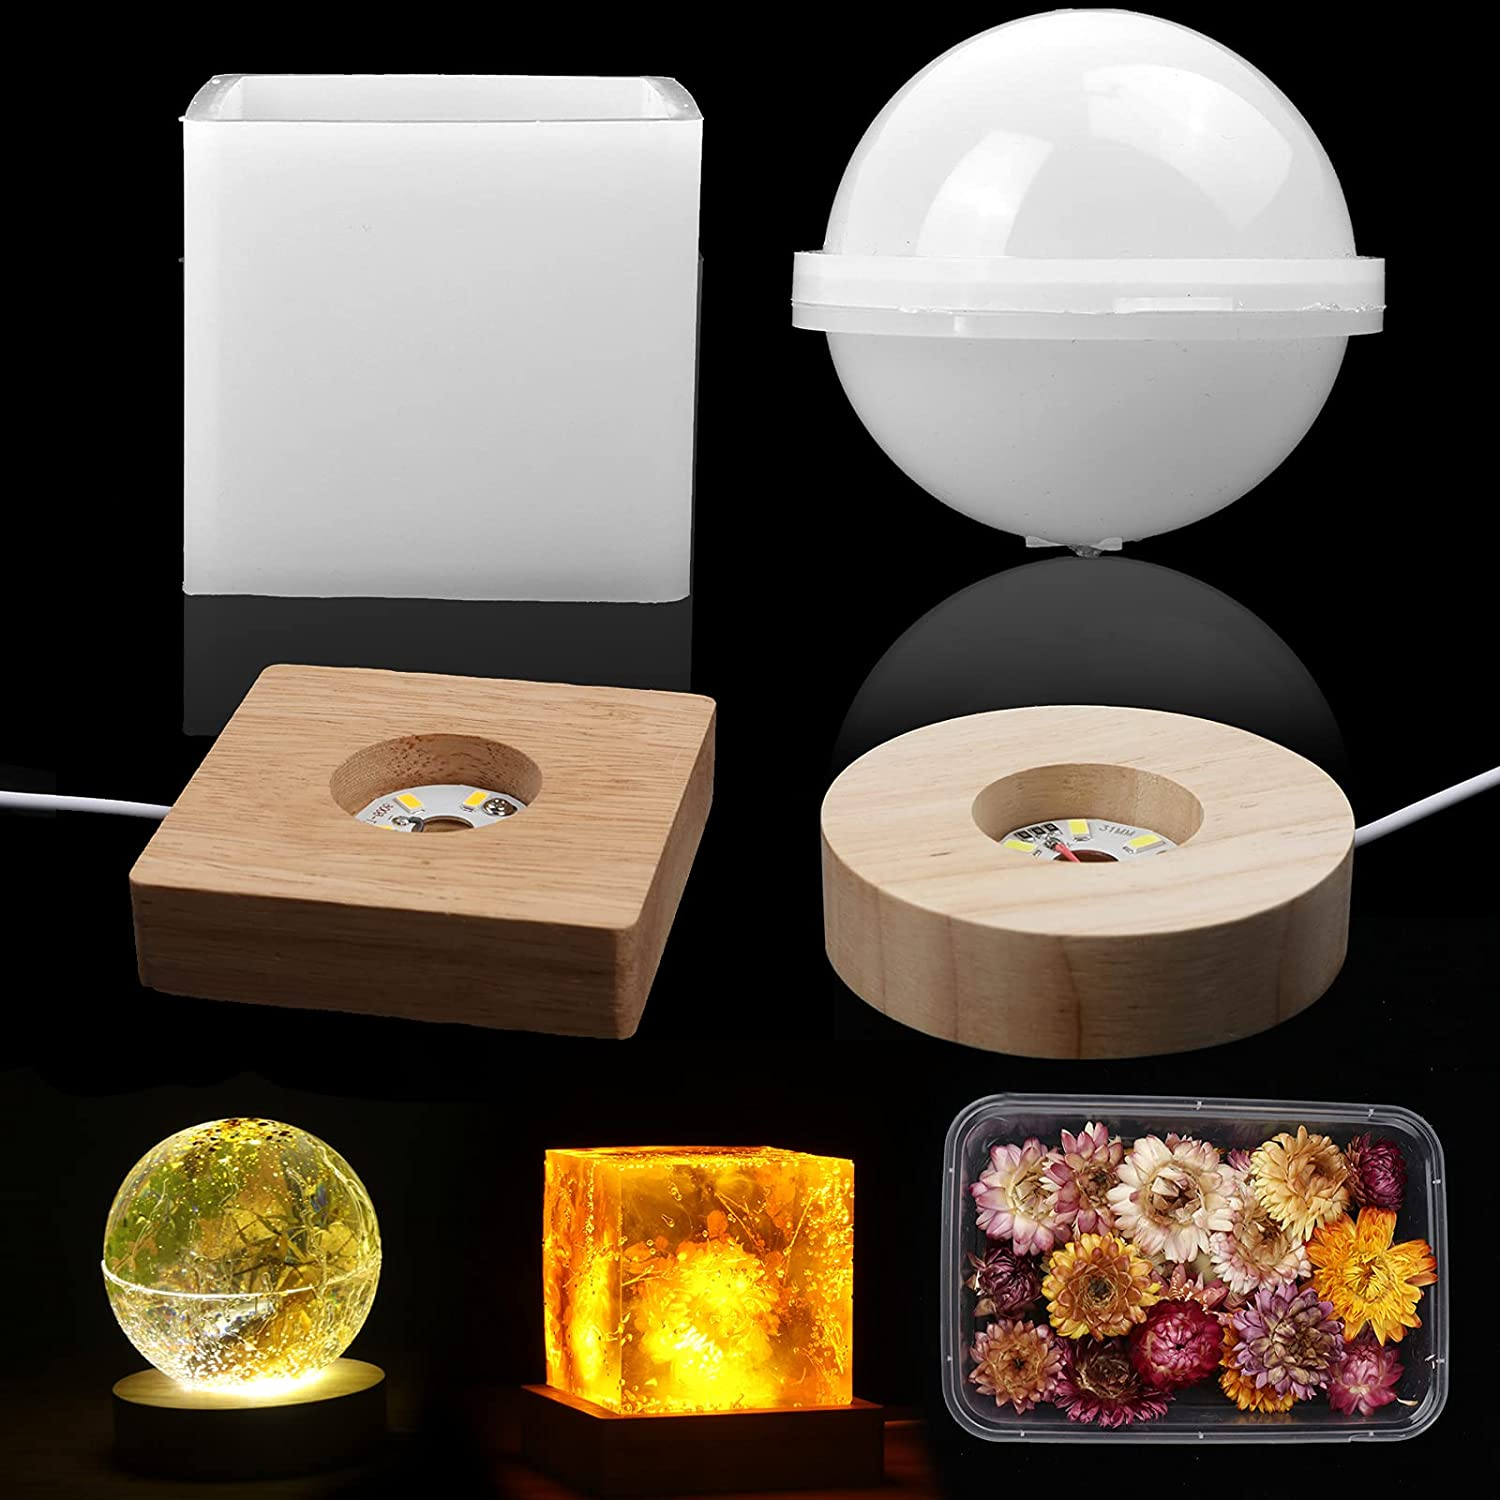 Light Resin Mold Set Sphere Square Silicone 2 and Over item handling Lamp Spasm price